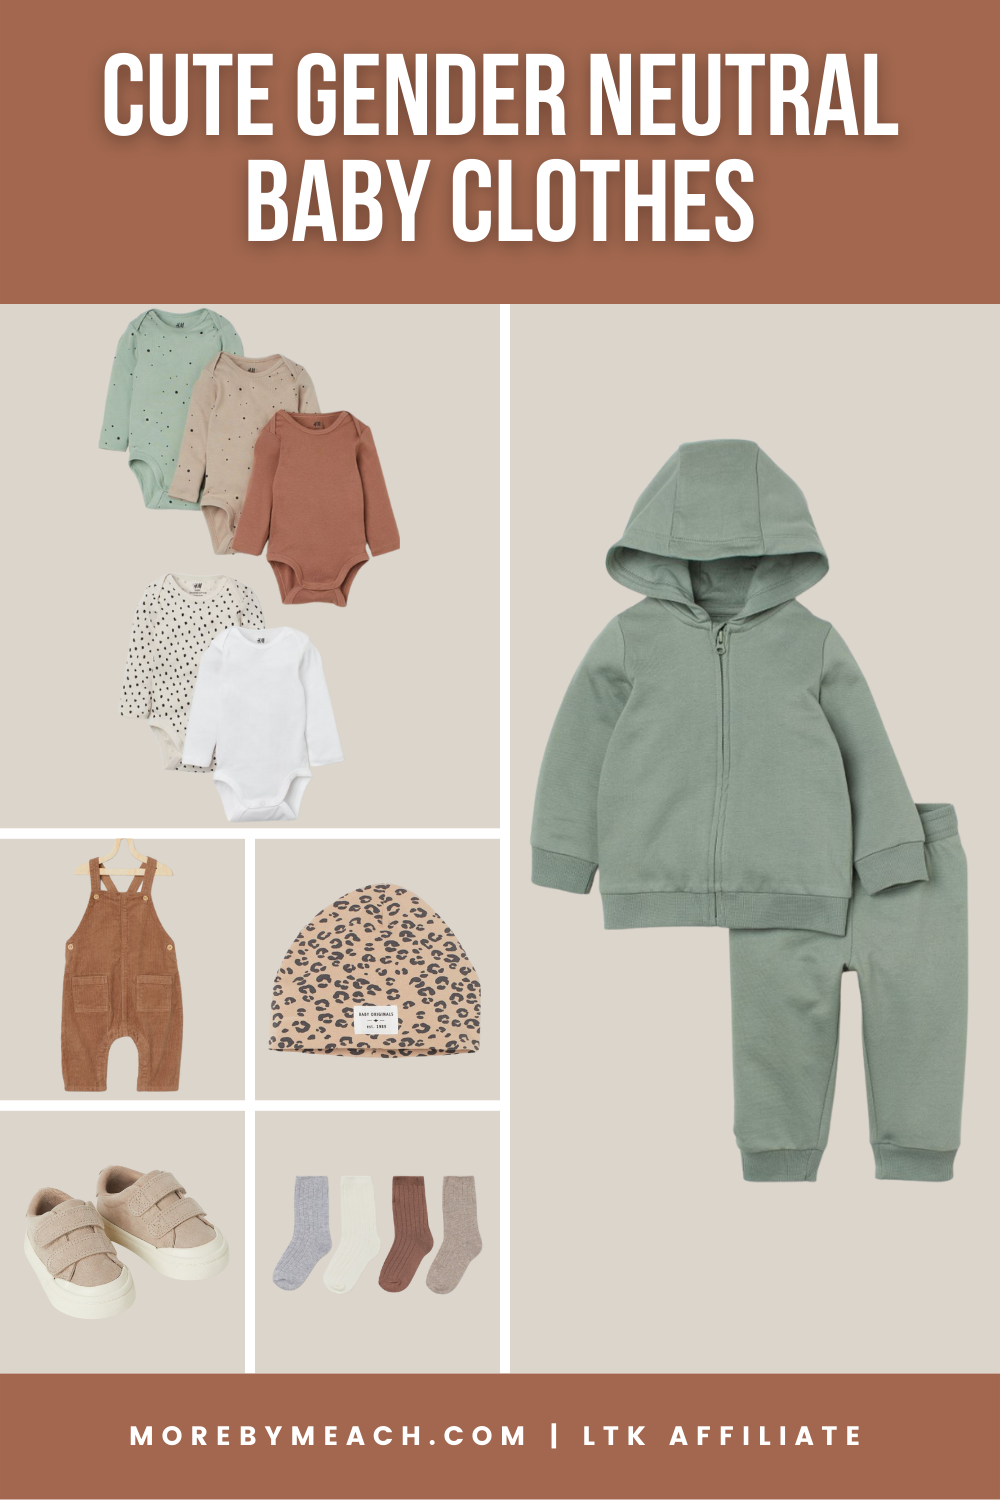 A collage featuring cute gender neutral baby clothes from H&M baby.